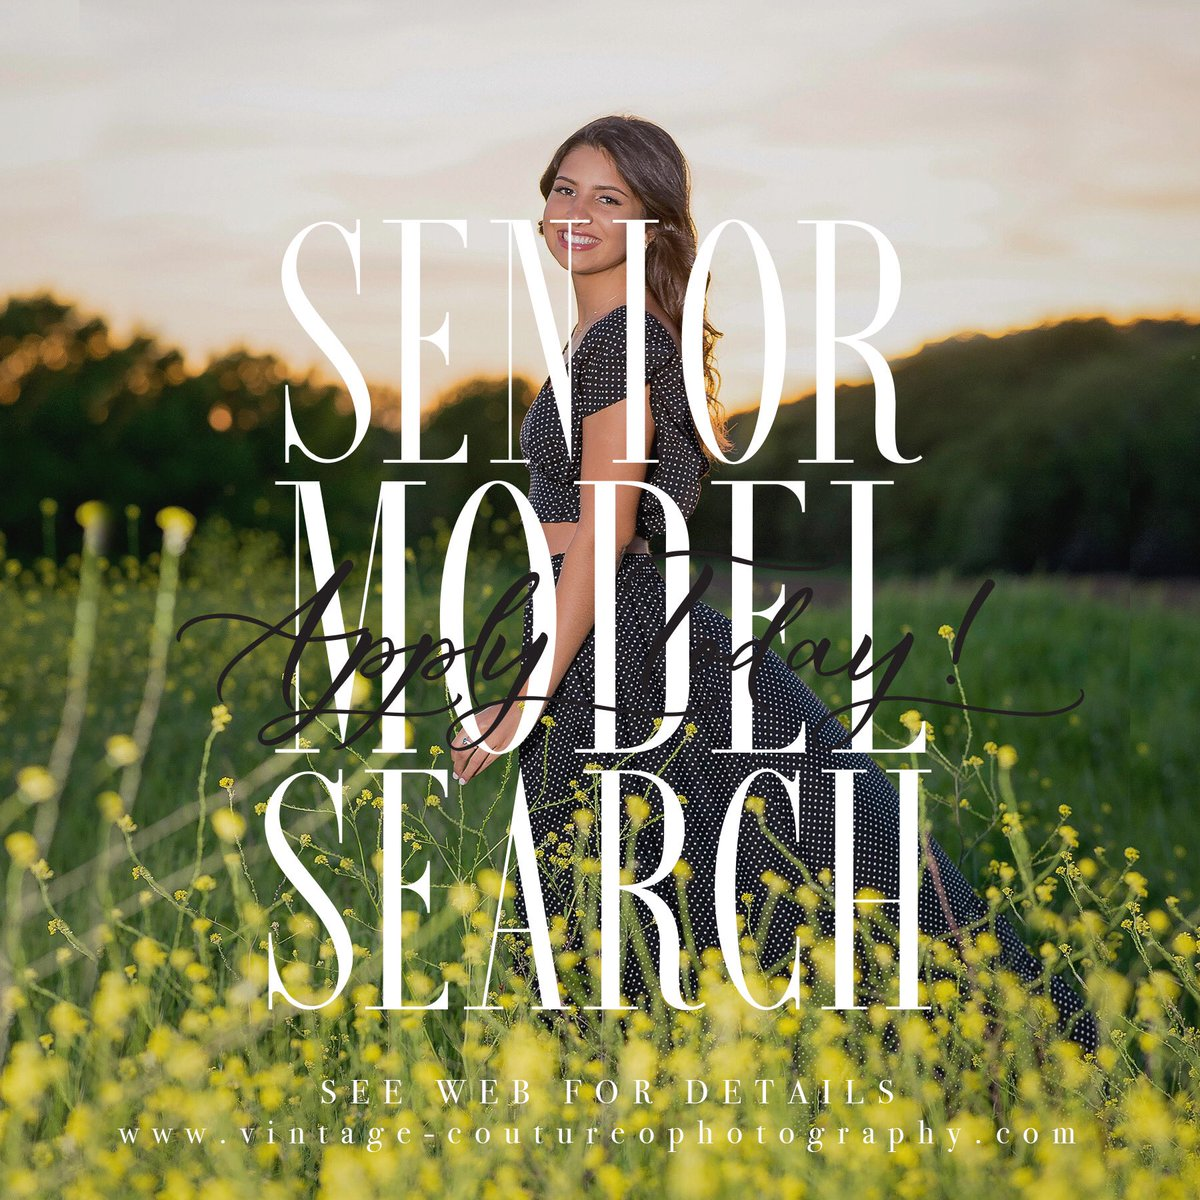 Calling Southlake and Grapevine 2021 Seniors!!   The VC team is looking for new gorgeous faces to be the next 2021 VC Ambassadors : Apply now at https://vintage-couturephotography.com/vintage-couture-ambassadors-program/ …   • • #senior #seniormodel #seniormodelsearch #modelsearch #modelcallpic.twitter.com/KuQLn7BiqP